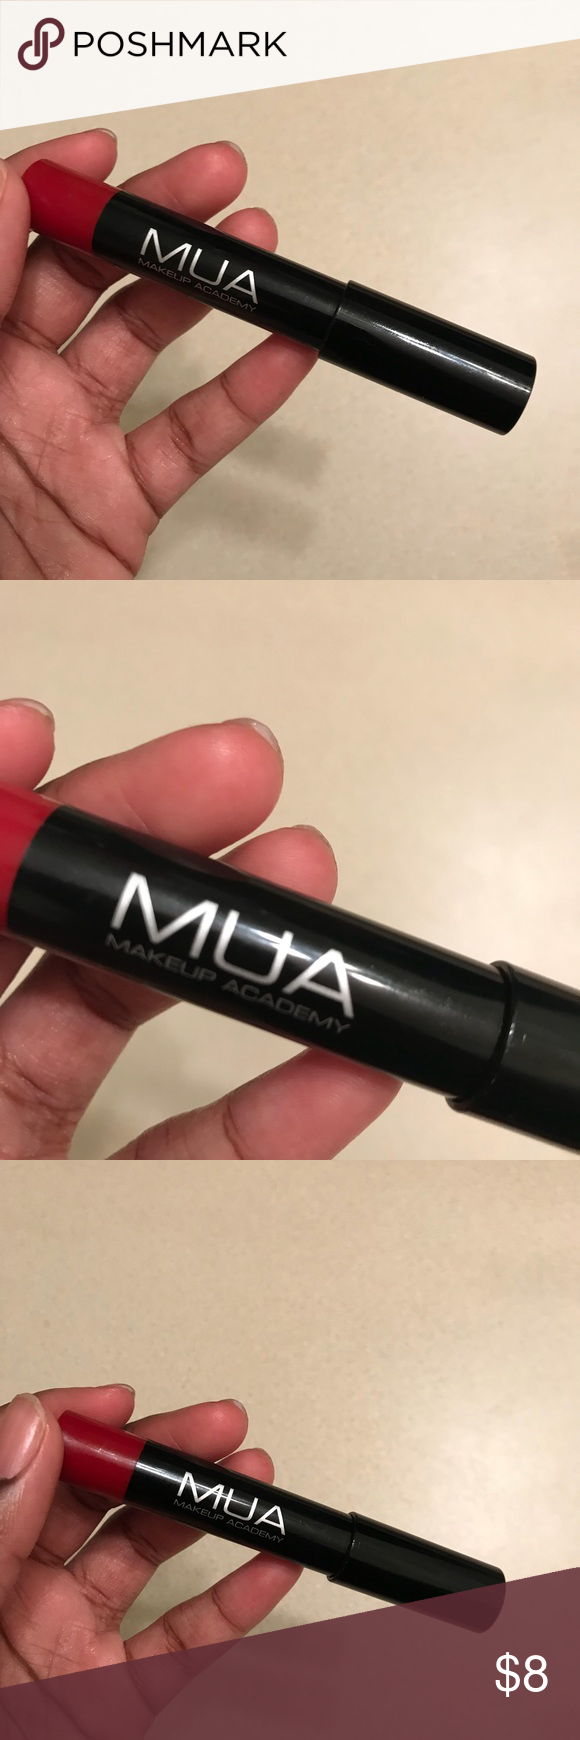 MAU Red Lipstick Makeup Academy Red Lipstick 💄 never used